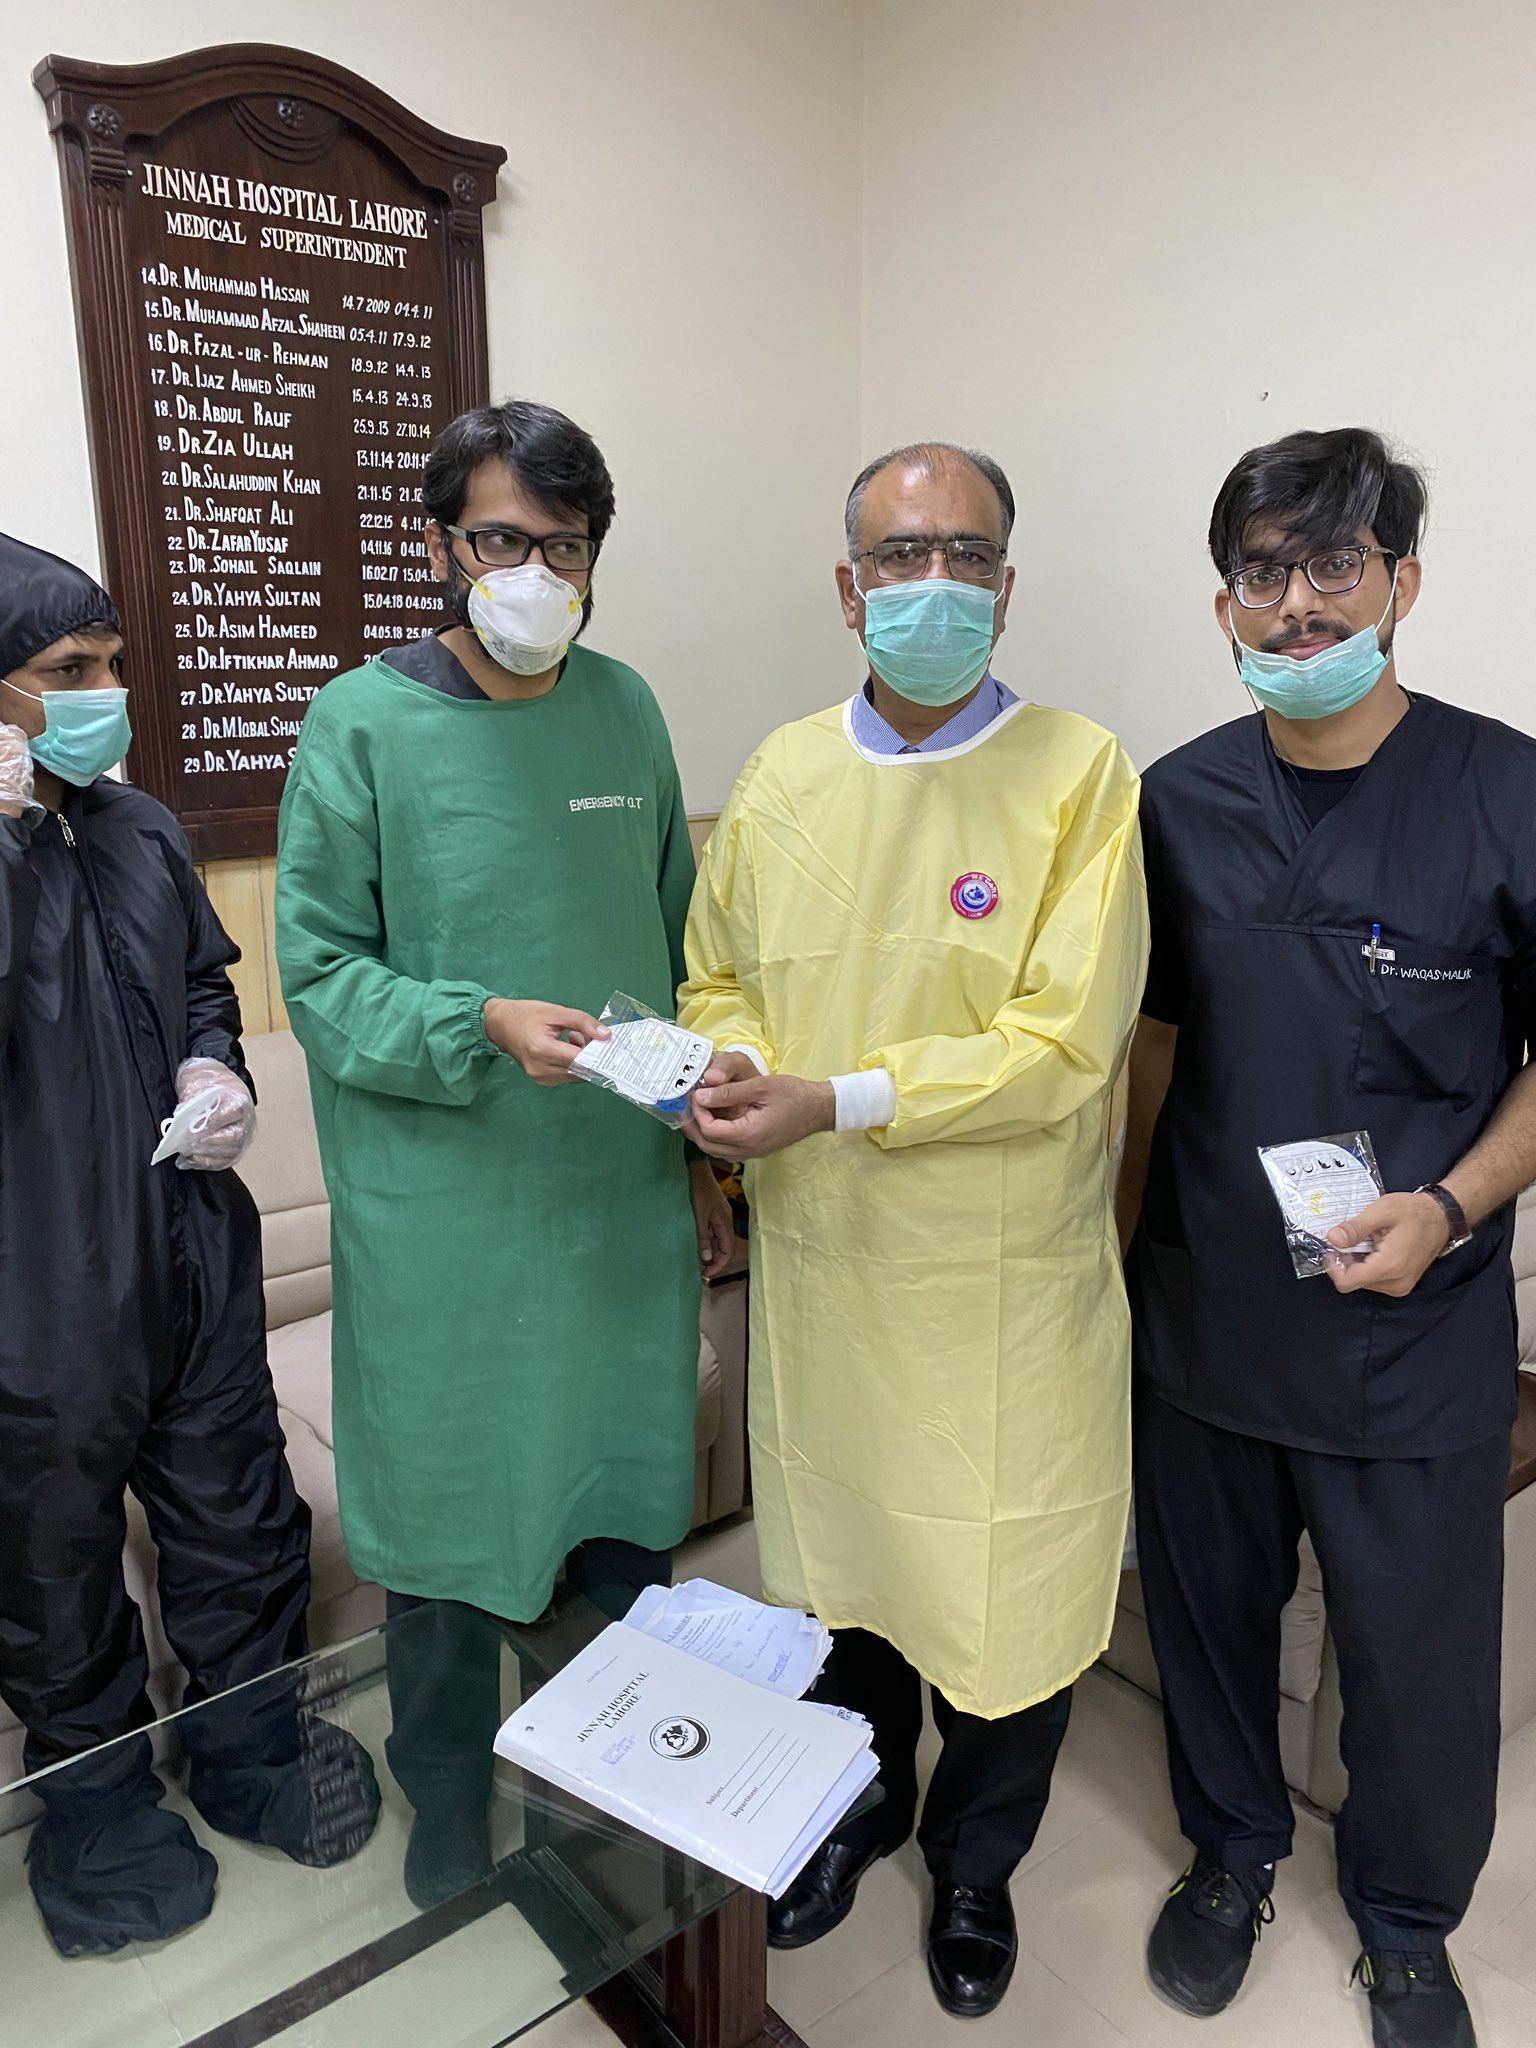 Dr Srg On Twitter Around 700 Ffp2 Masks Given By Ms Jinnah Hospital To Doctors And Other Staff On Duty Well Done Dr Yahya Healthpunjabgov Dr Yasminrashid Https T Co Sszllnu7jg